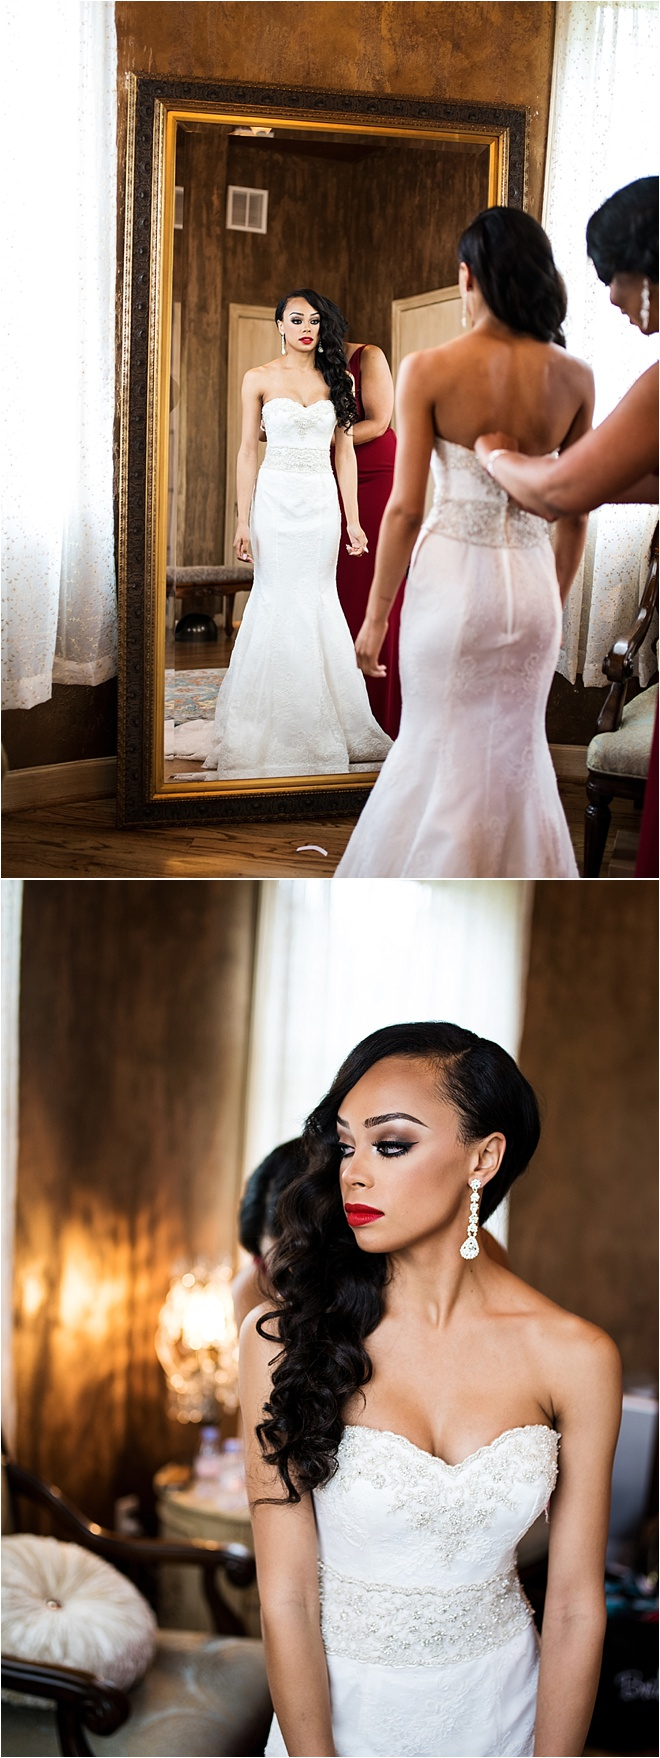 Romantic White and Red Wedding at Chateau Polonez by Civic Photos